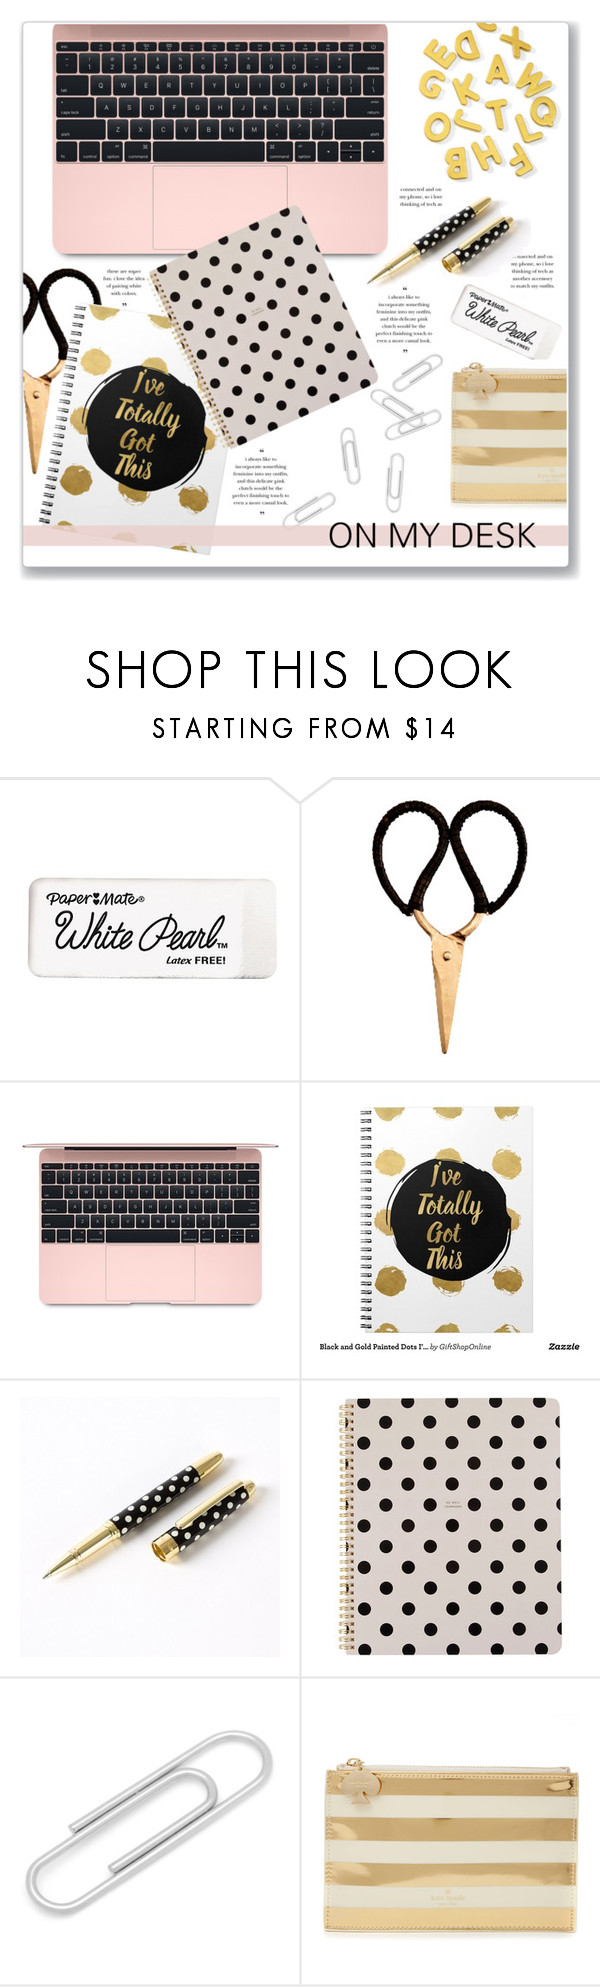 """""""What's on My Desk?"""" by kellylynne68 ❤ liked on Polyvore featuring interior, interiors, interior design, home, home decor, interior decorating, Kate Spade, Madam Stoltz, desk and onmydesk"""